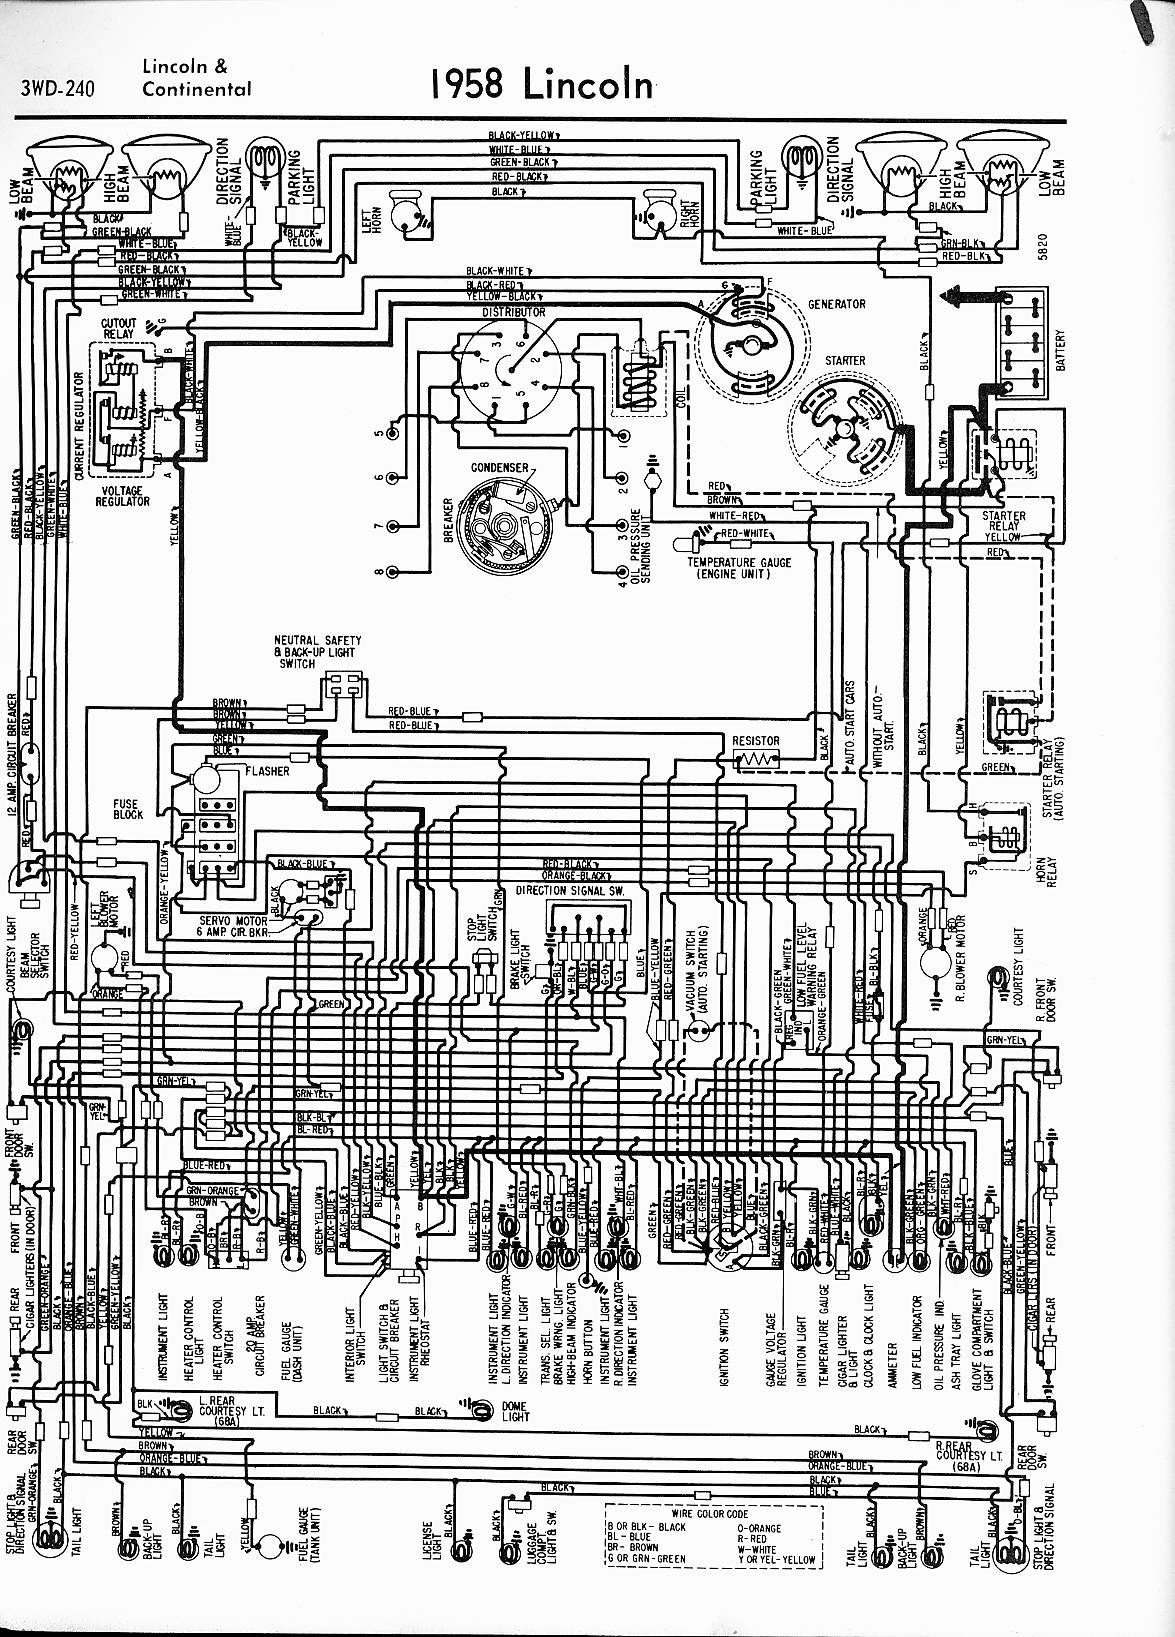 1991 lincoln continental wiring diagram wiring library 1991 Buick Park Avenue Wiring Diagram 1966 lincoln wiring diagram